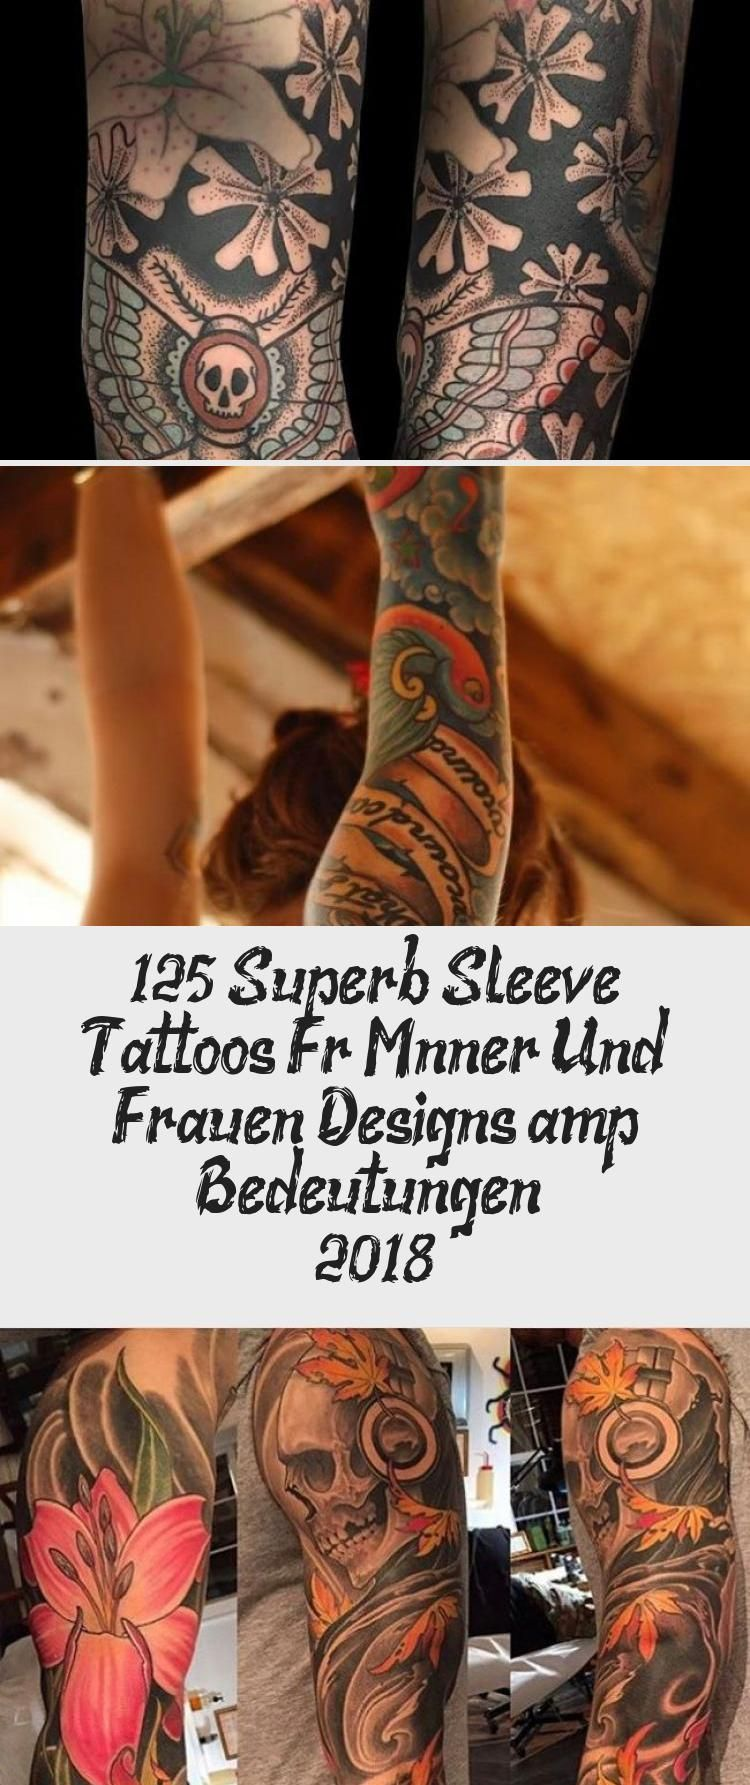 100 The Best Tattoos Ever Best Tattoo Ever Cool Tattoos Tattoos